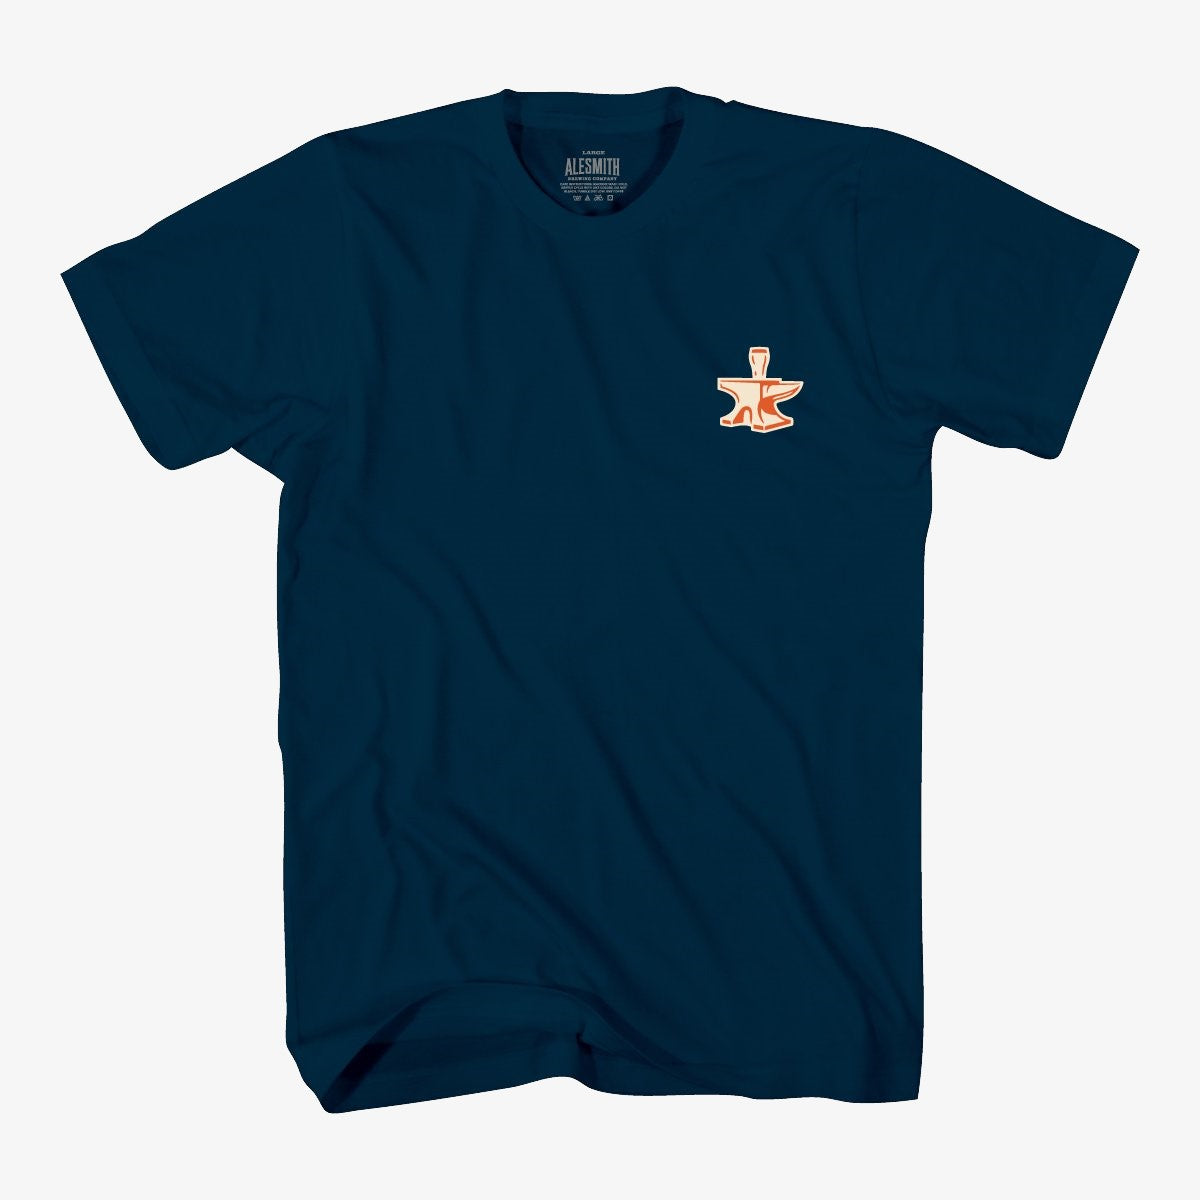 Navy with Orange Anvil Tee - Alesmith Brewing Company